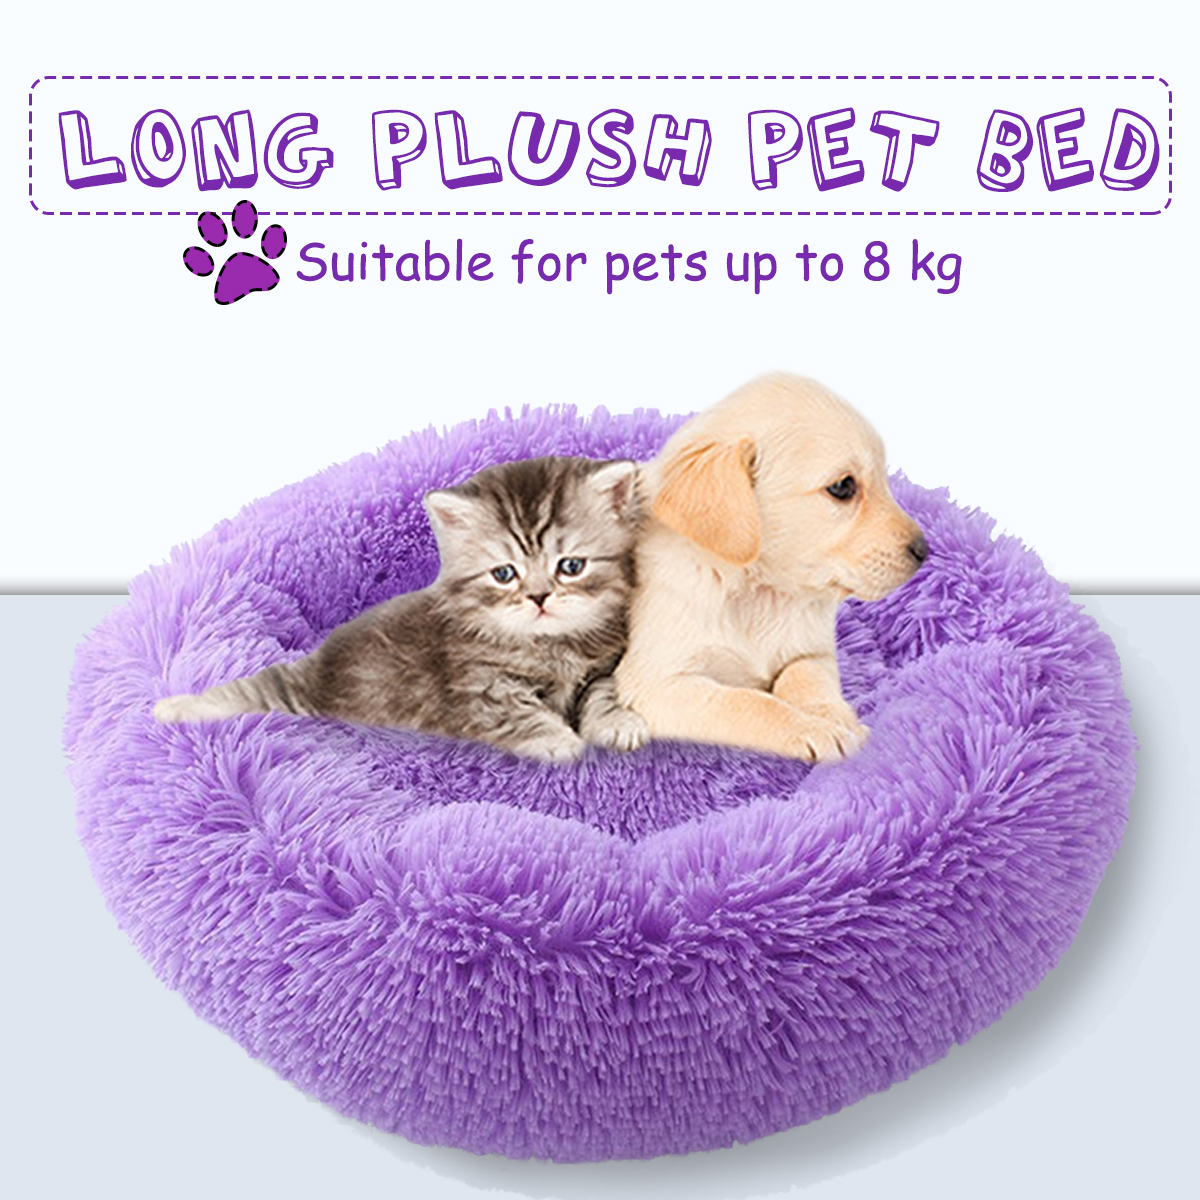 Pet Dog Puppy Bed Orthopedic Long Plush Soft Mattress Sleeping Nest House Pet Cushion for Dogs & Cats and Other Pets Up to 8 kg